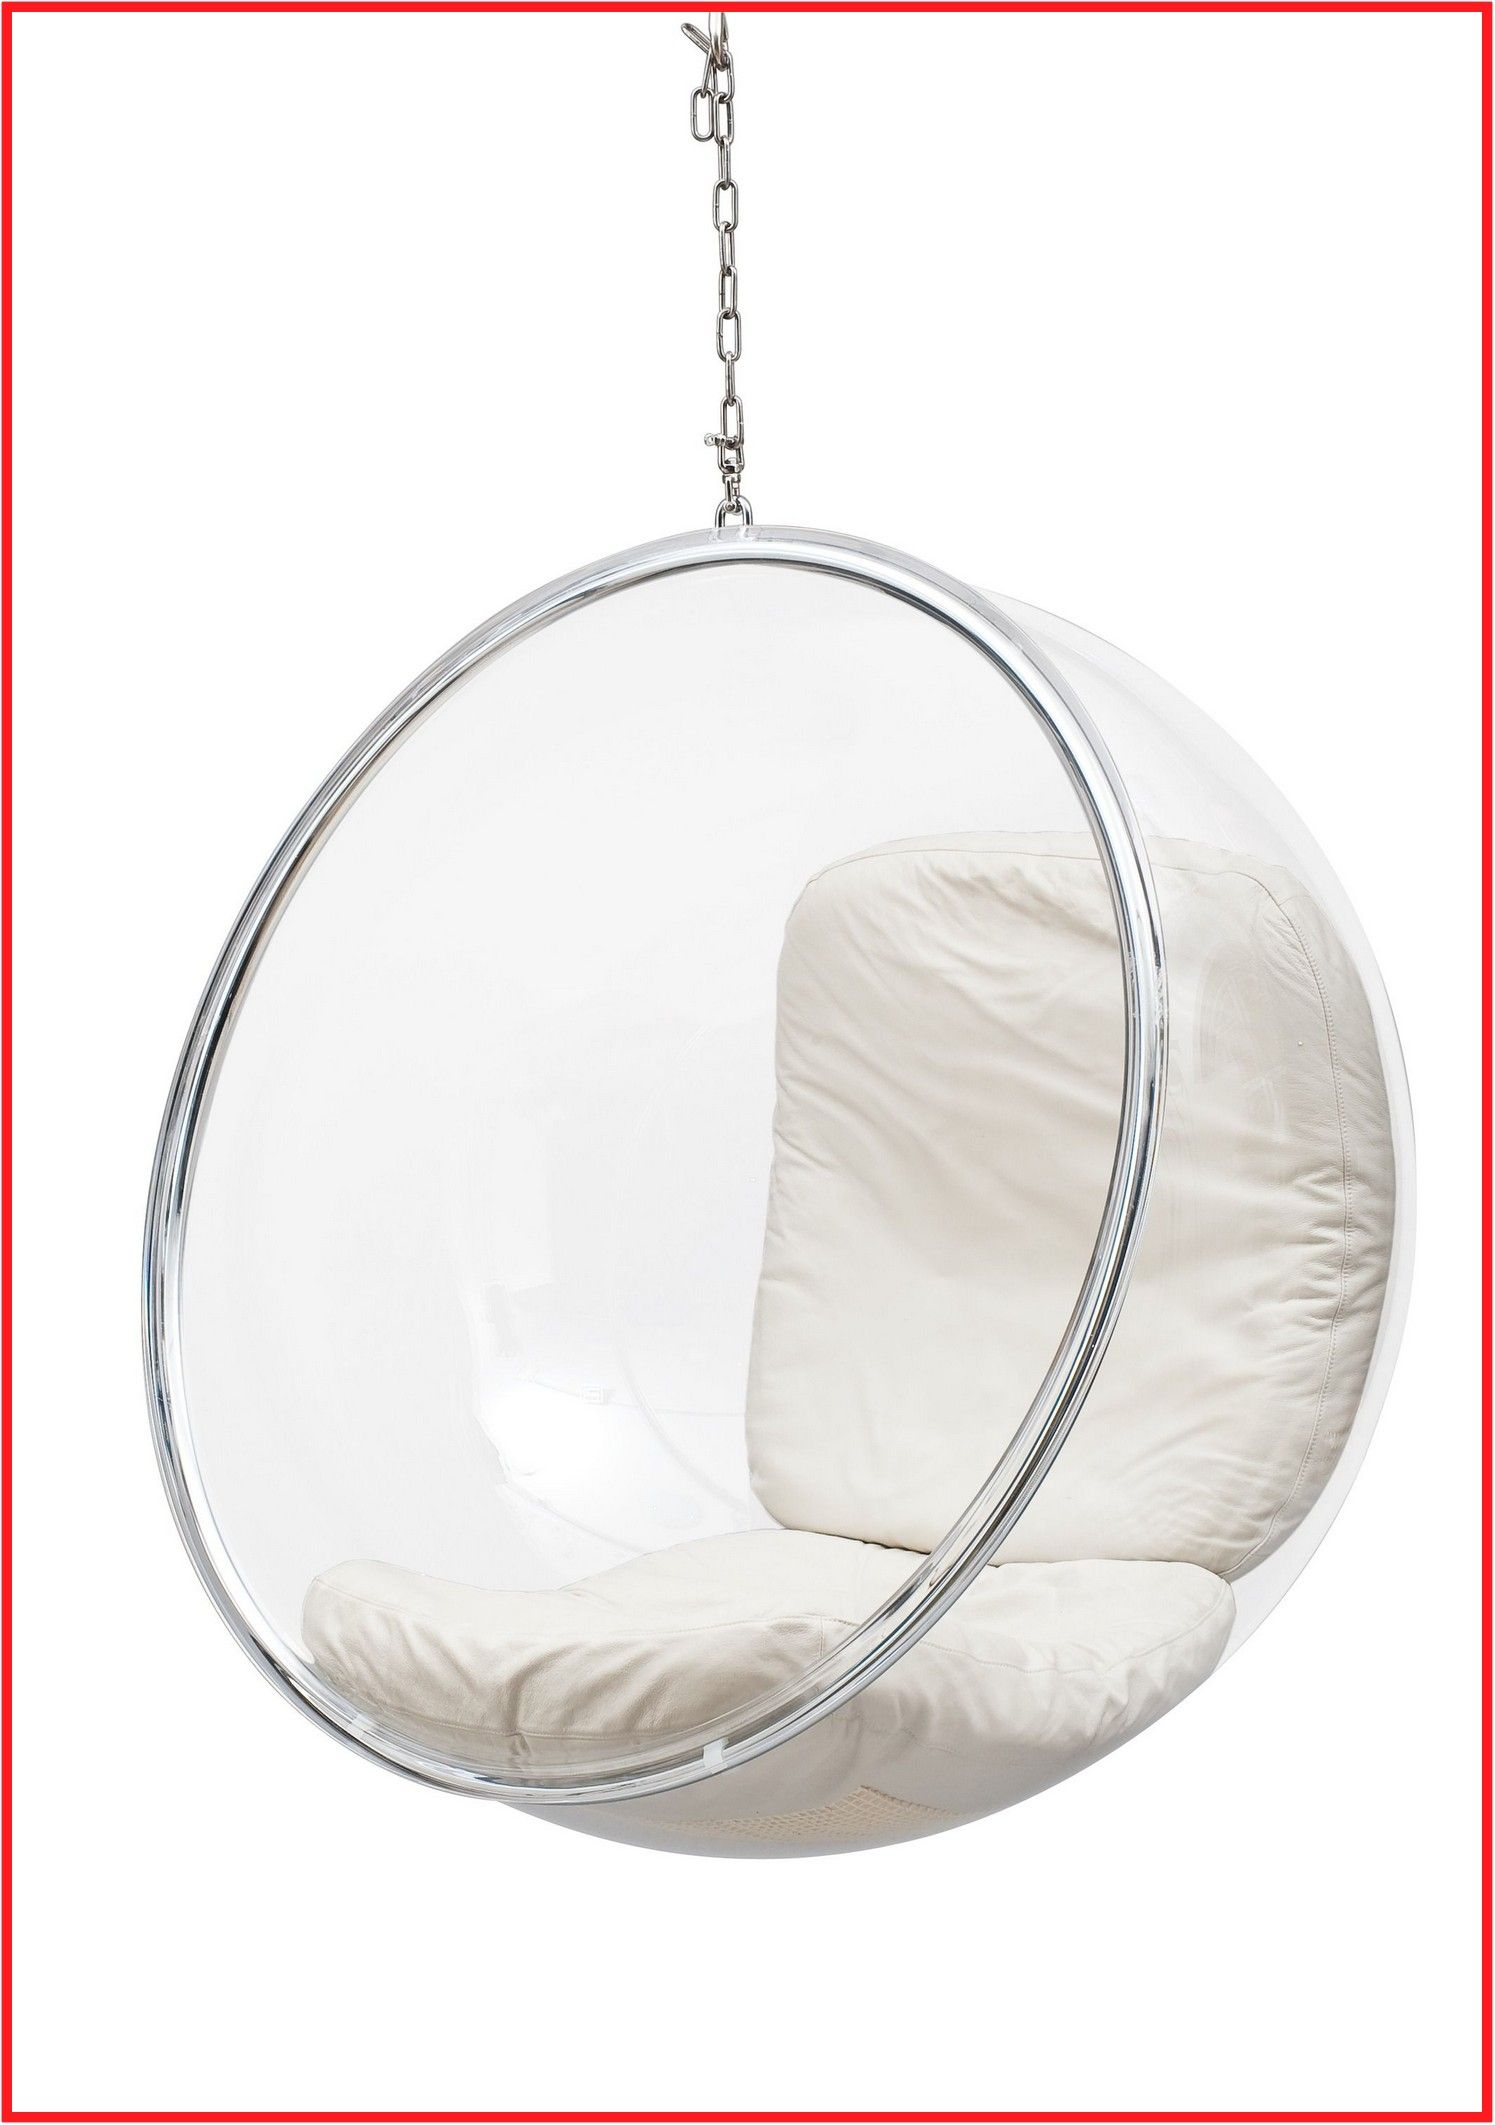 101 Reference Of Hanging Chair Acrylic In 2020 Hanging Chair Hanging Garden Chair Chair